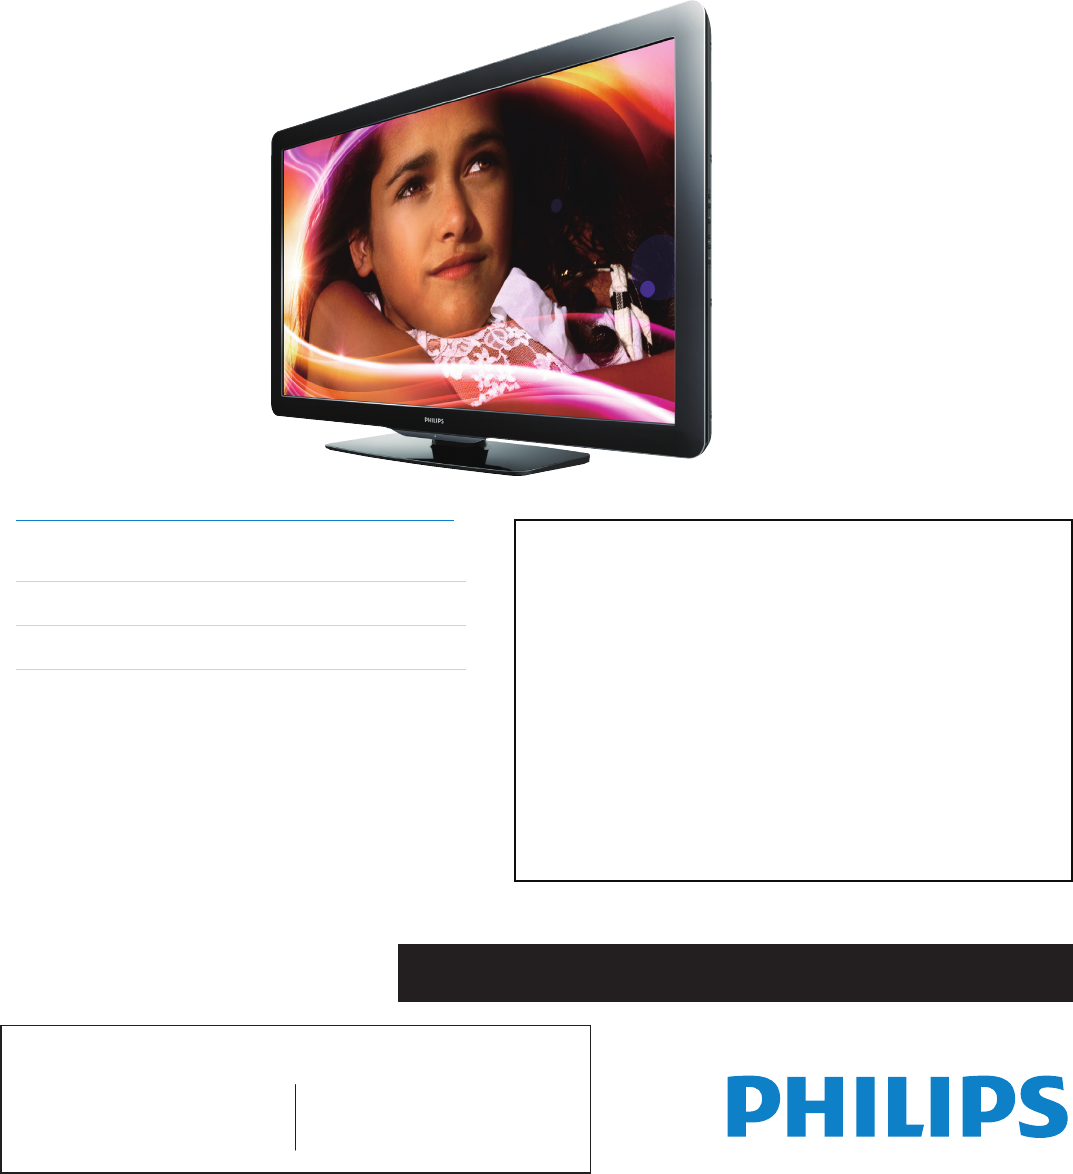 philips flat panel television 46pfl3706 user guide. Black Bedroom Furniture Sets. Home Design Ideas